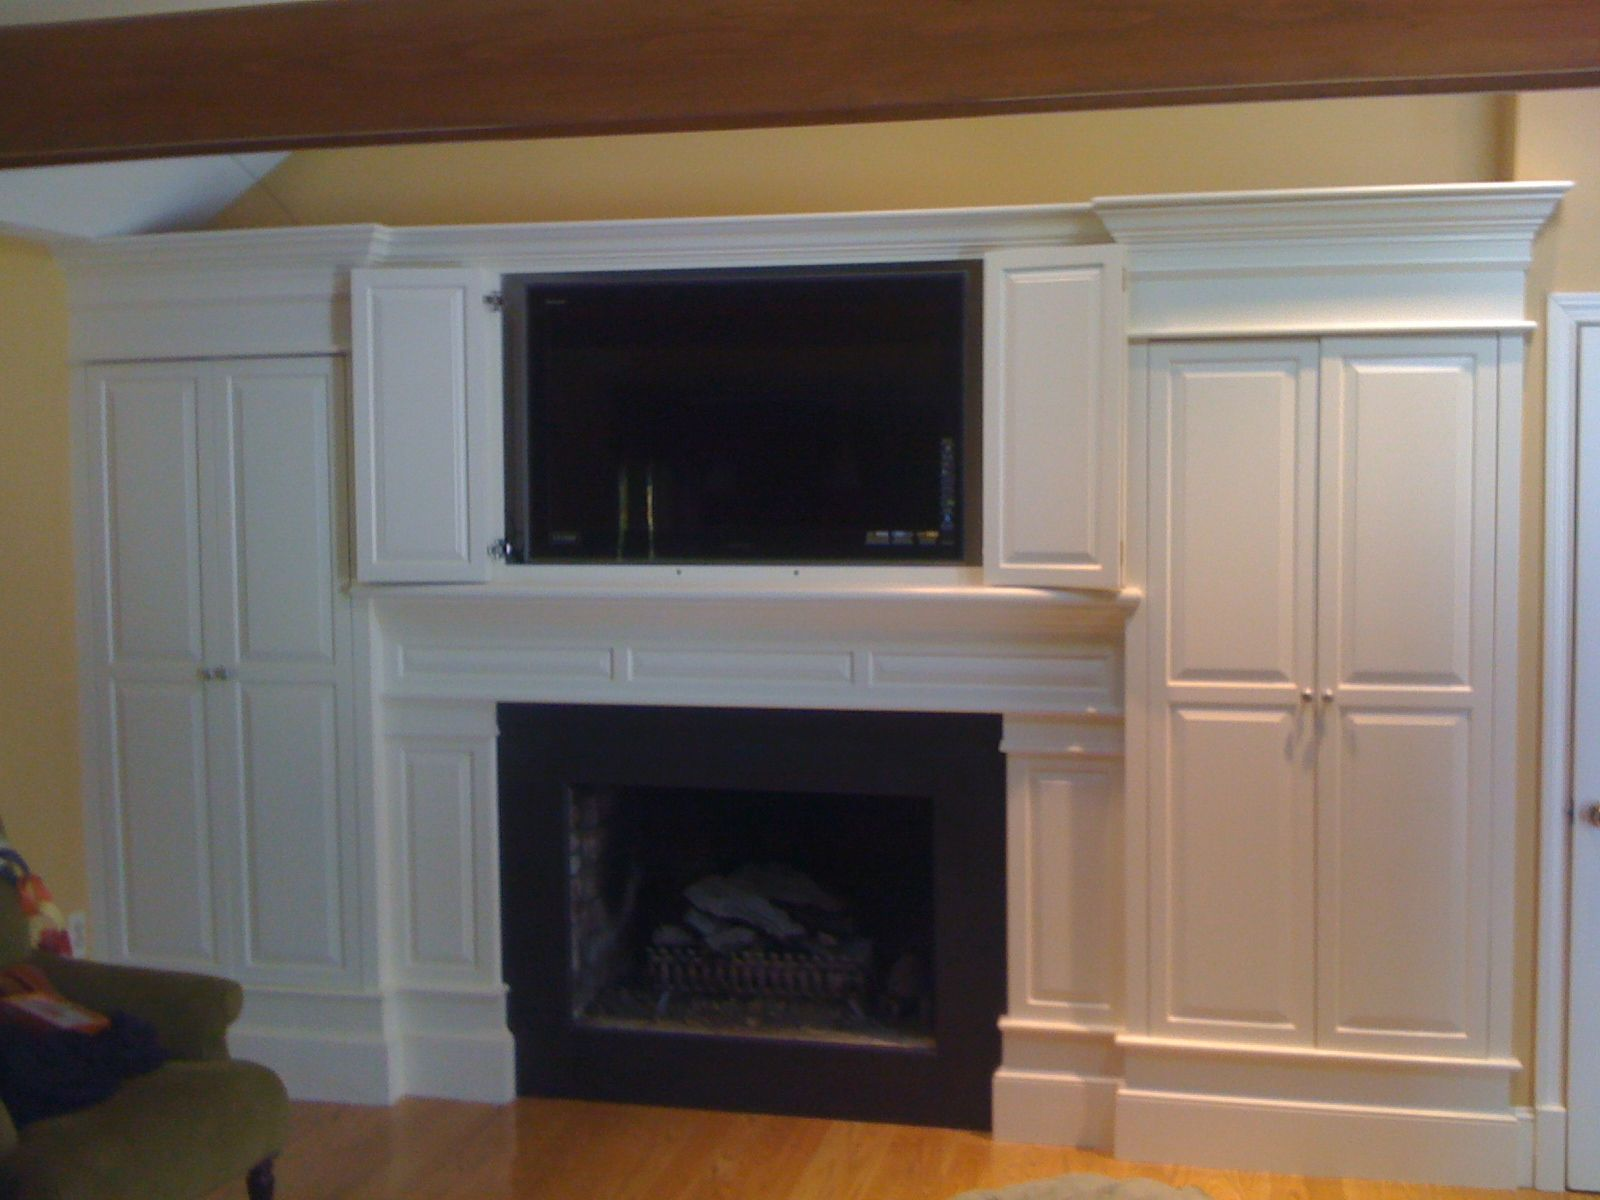 Fireplace surround with doors open to show LCD tv